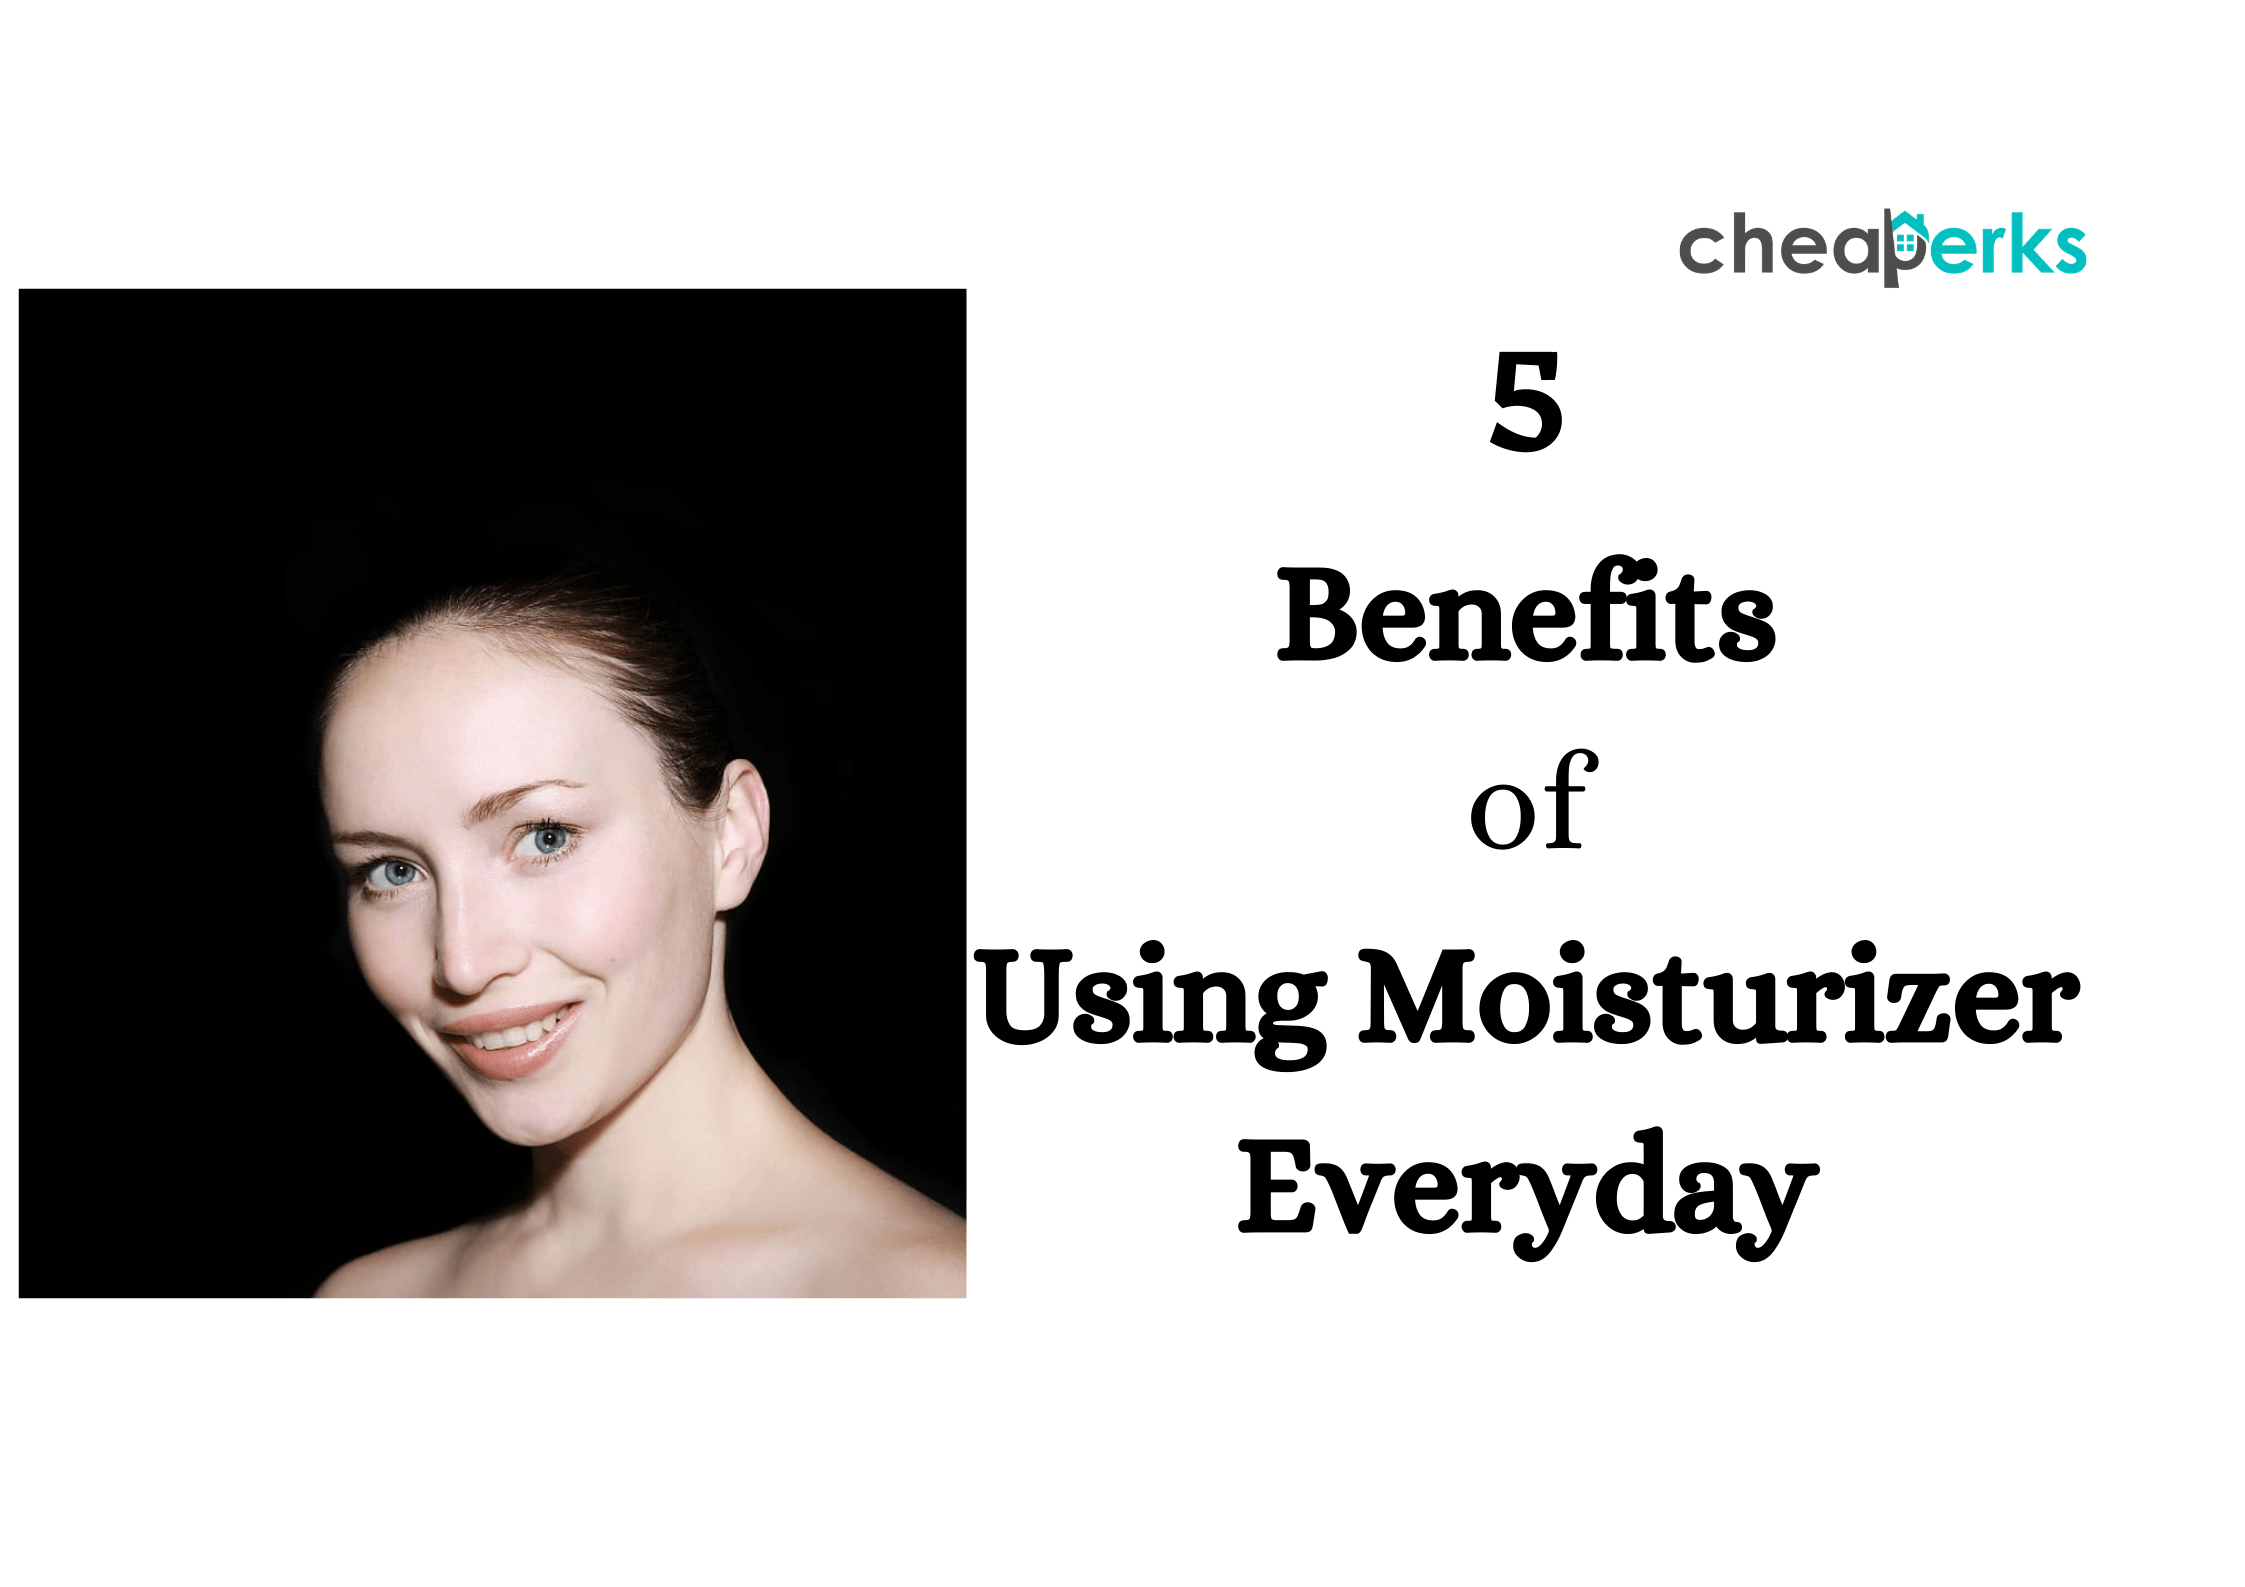 Benefits of Using a Moisturizer Everyday